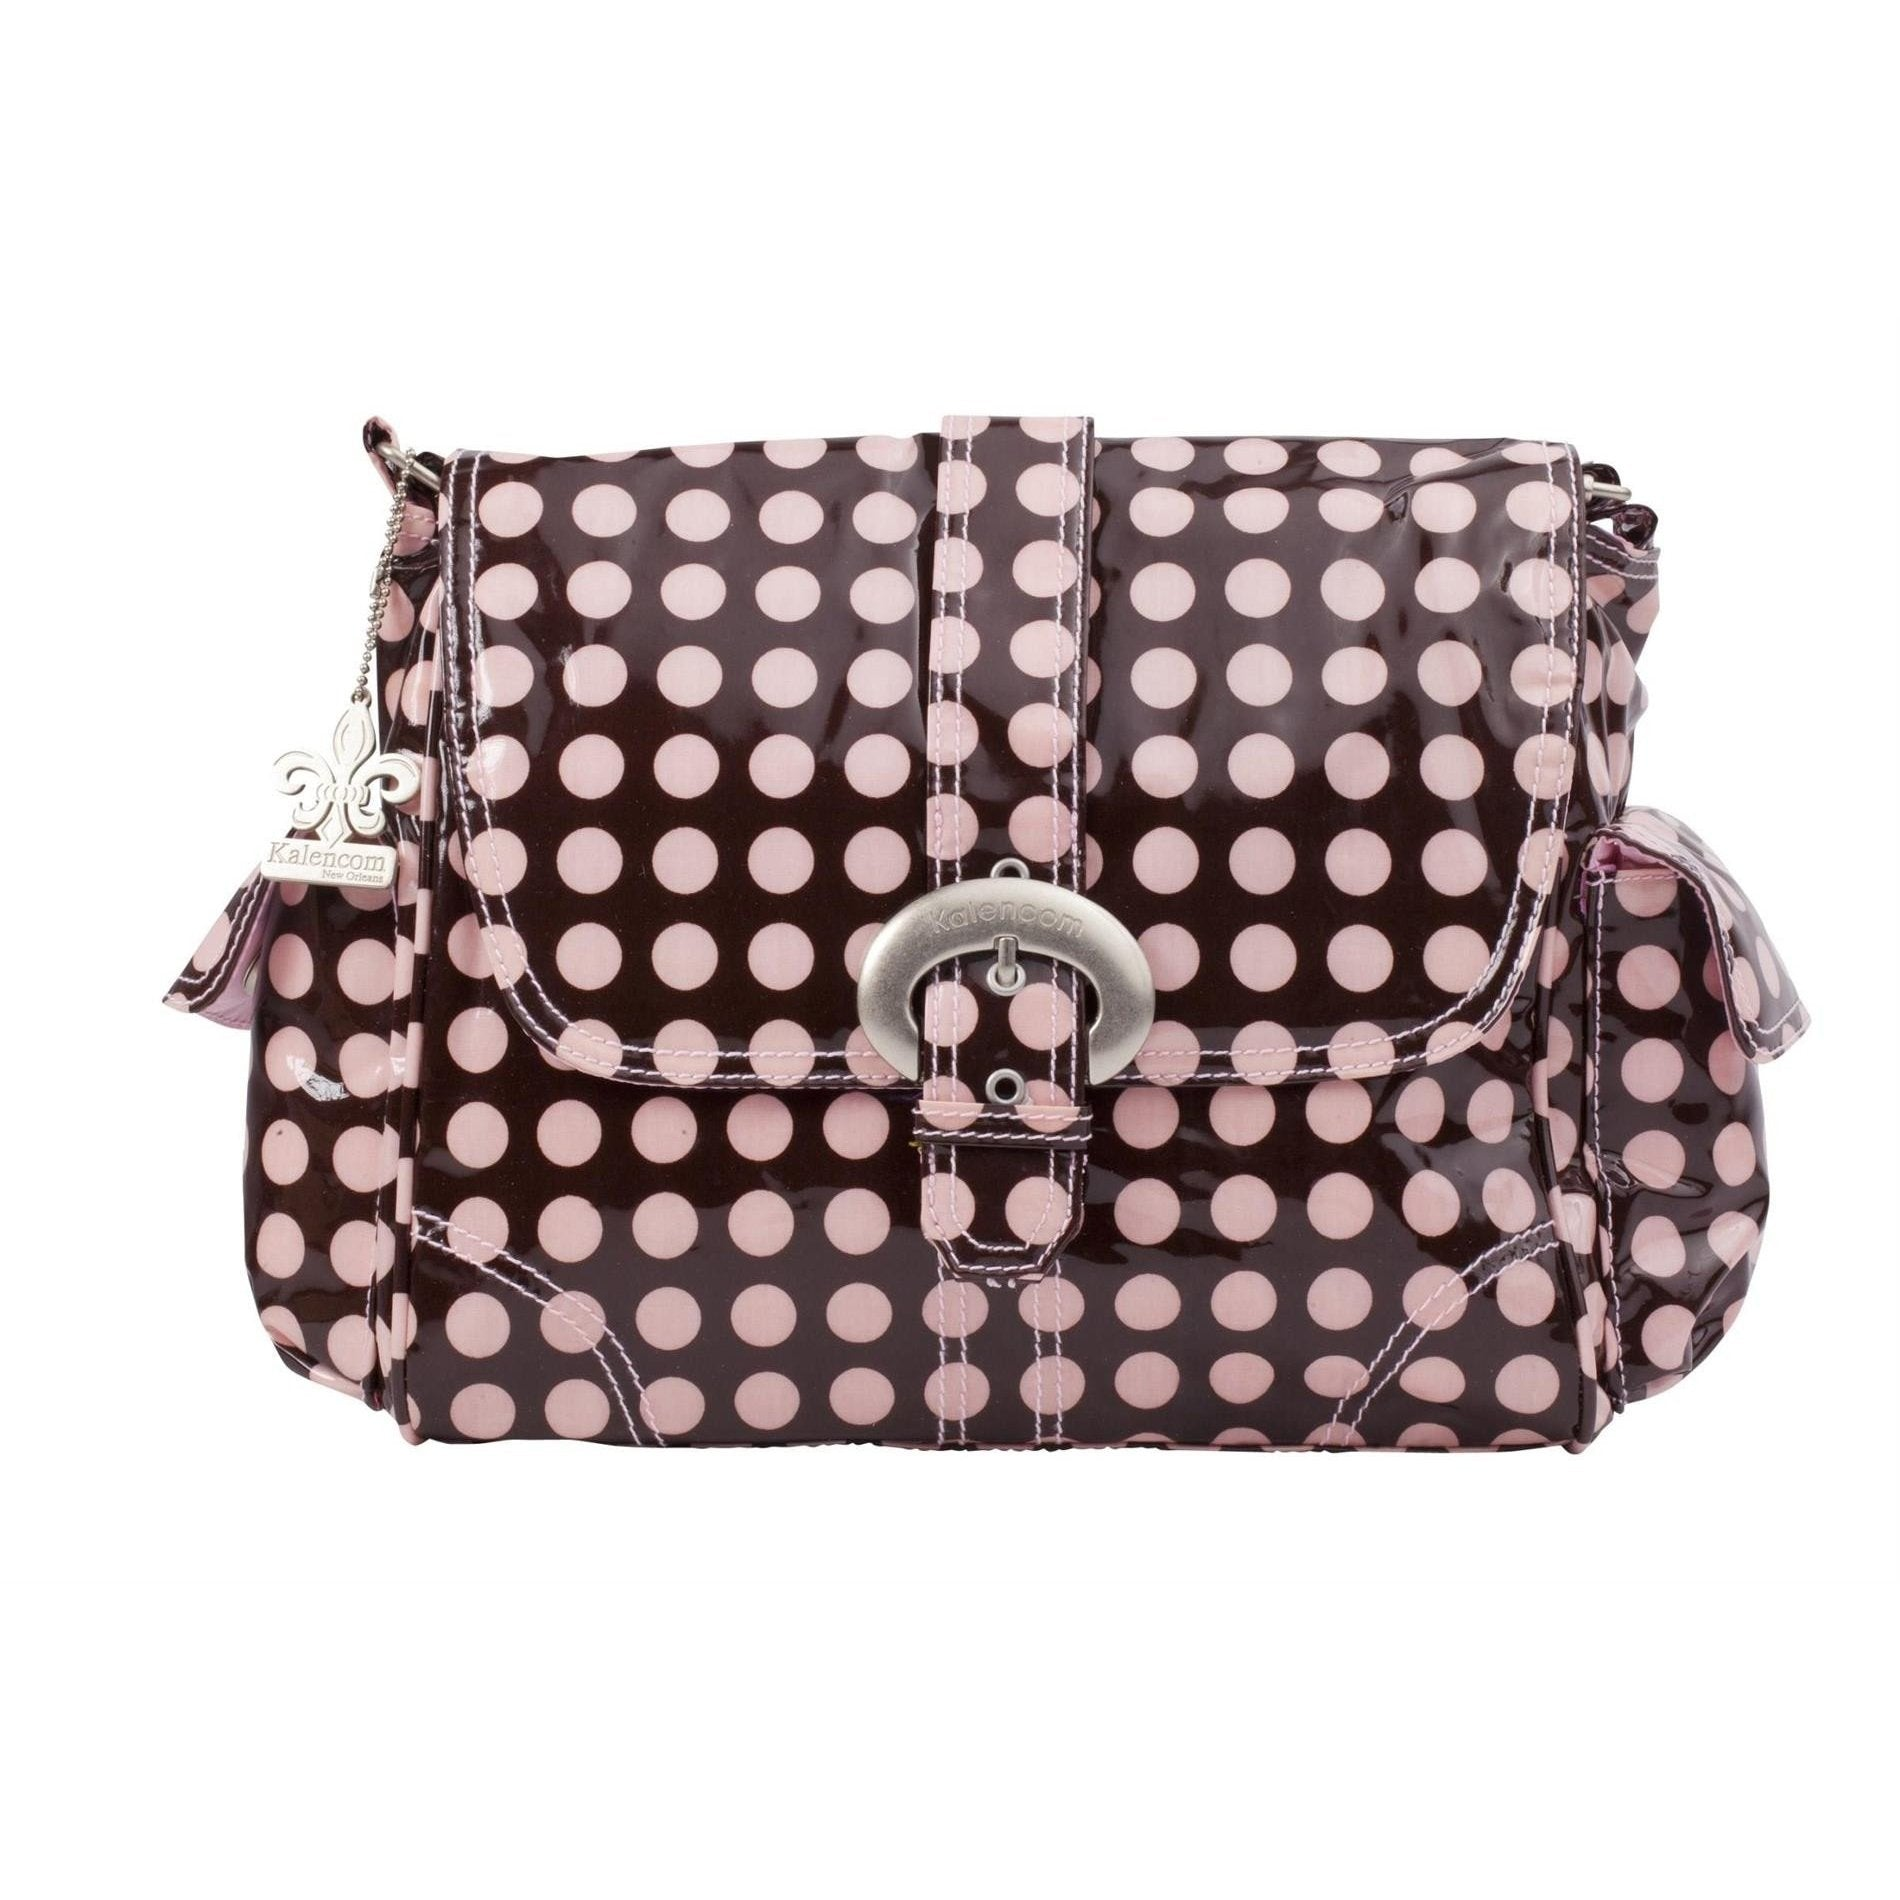 Heavenly Dots - Chocolate-Pink Midi Coated Buckle Diaper Bag | Style 2959 - Kalencom-Diaper Bags-Default-Jack and Jill Boutique